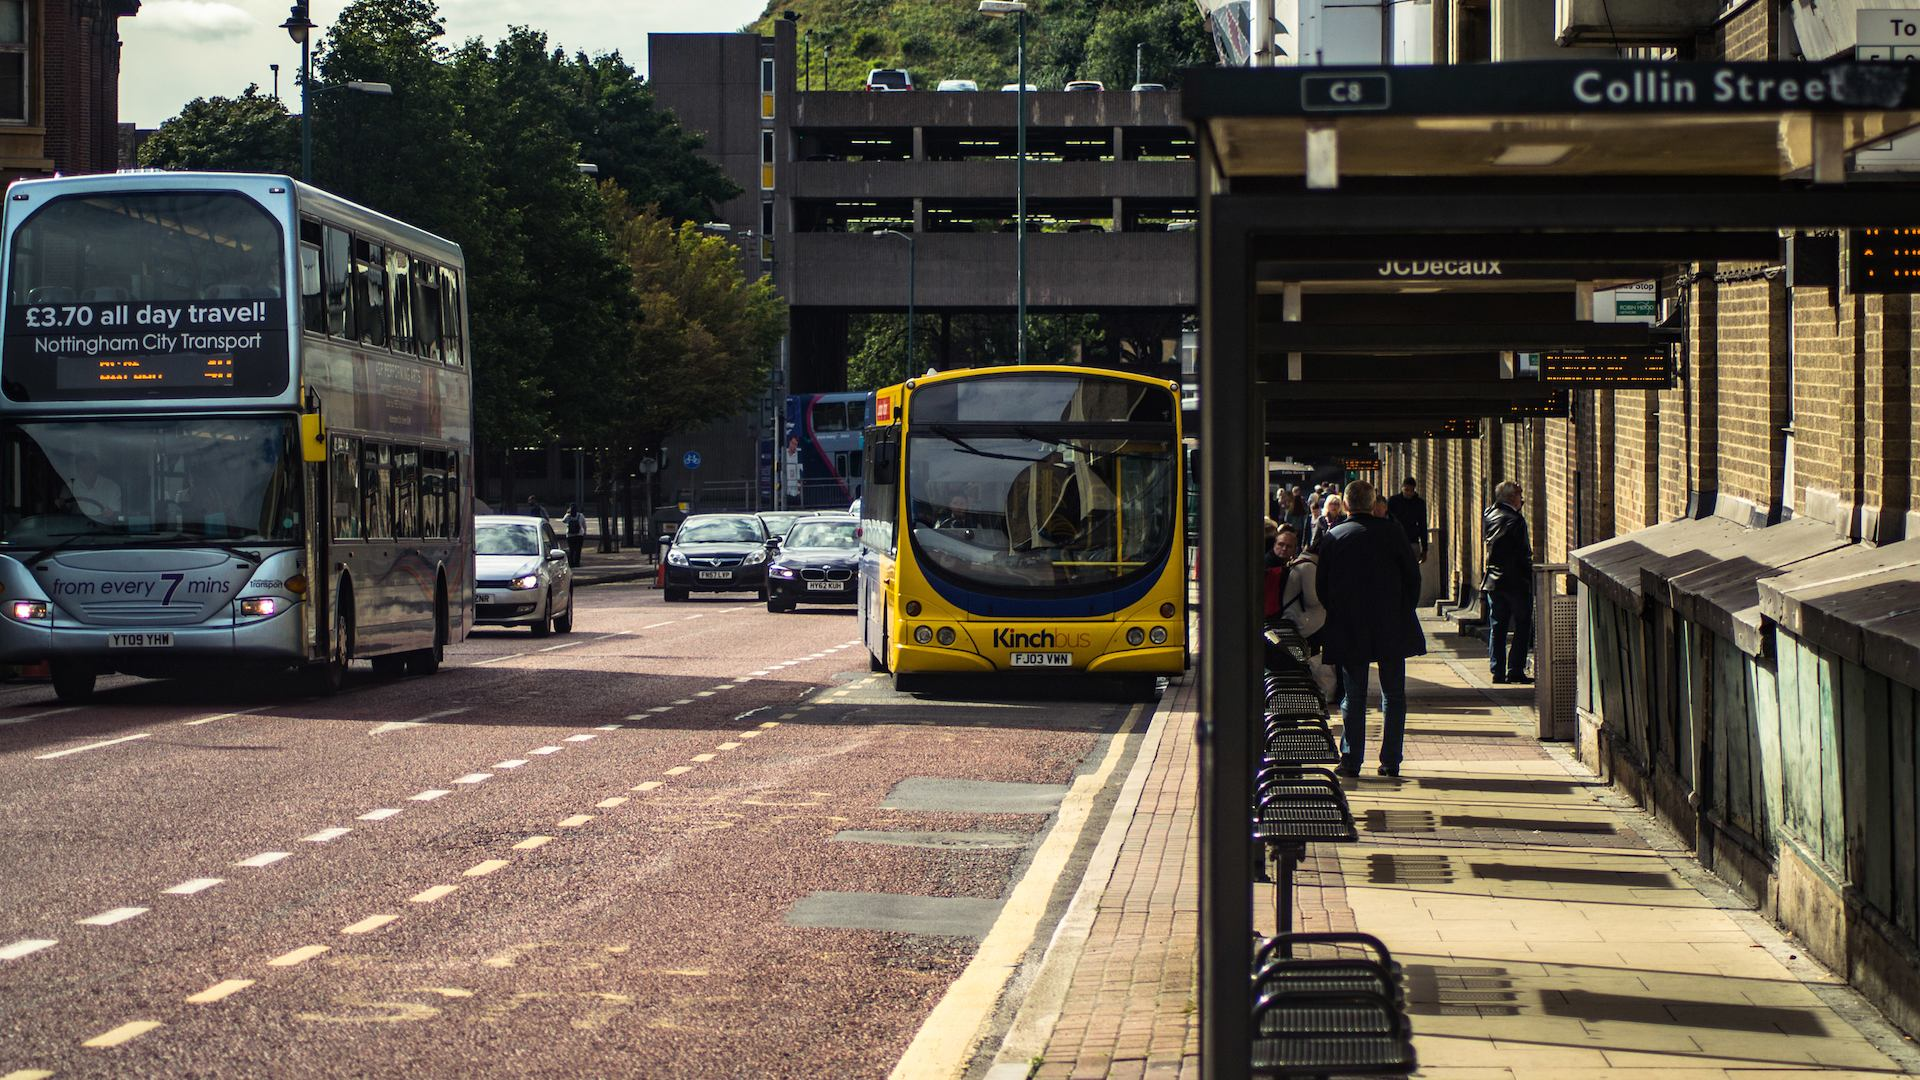 Bus in city centre